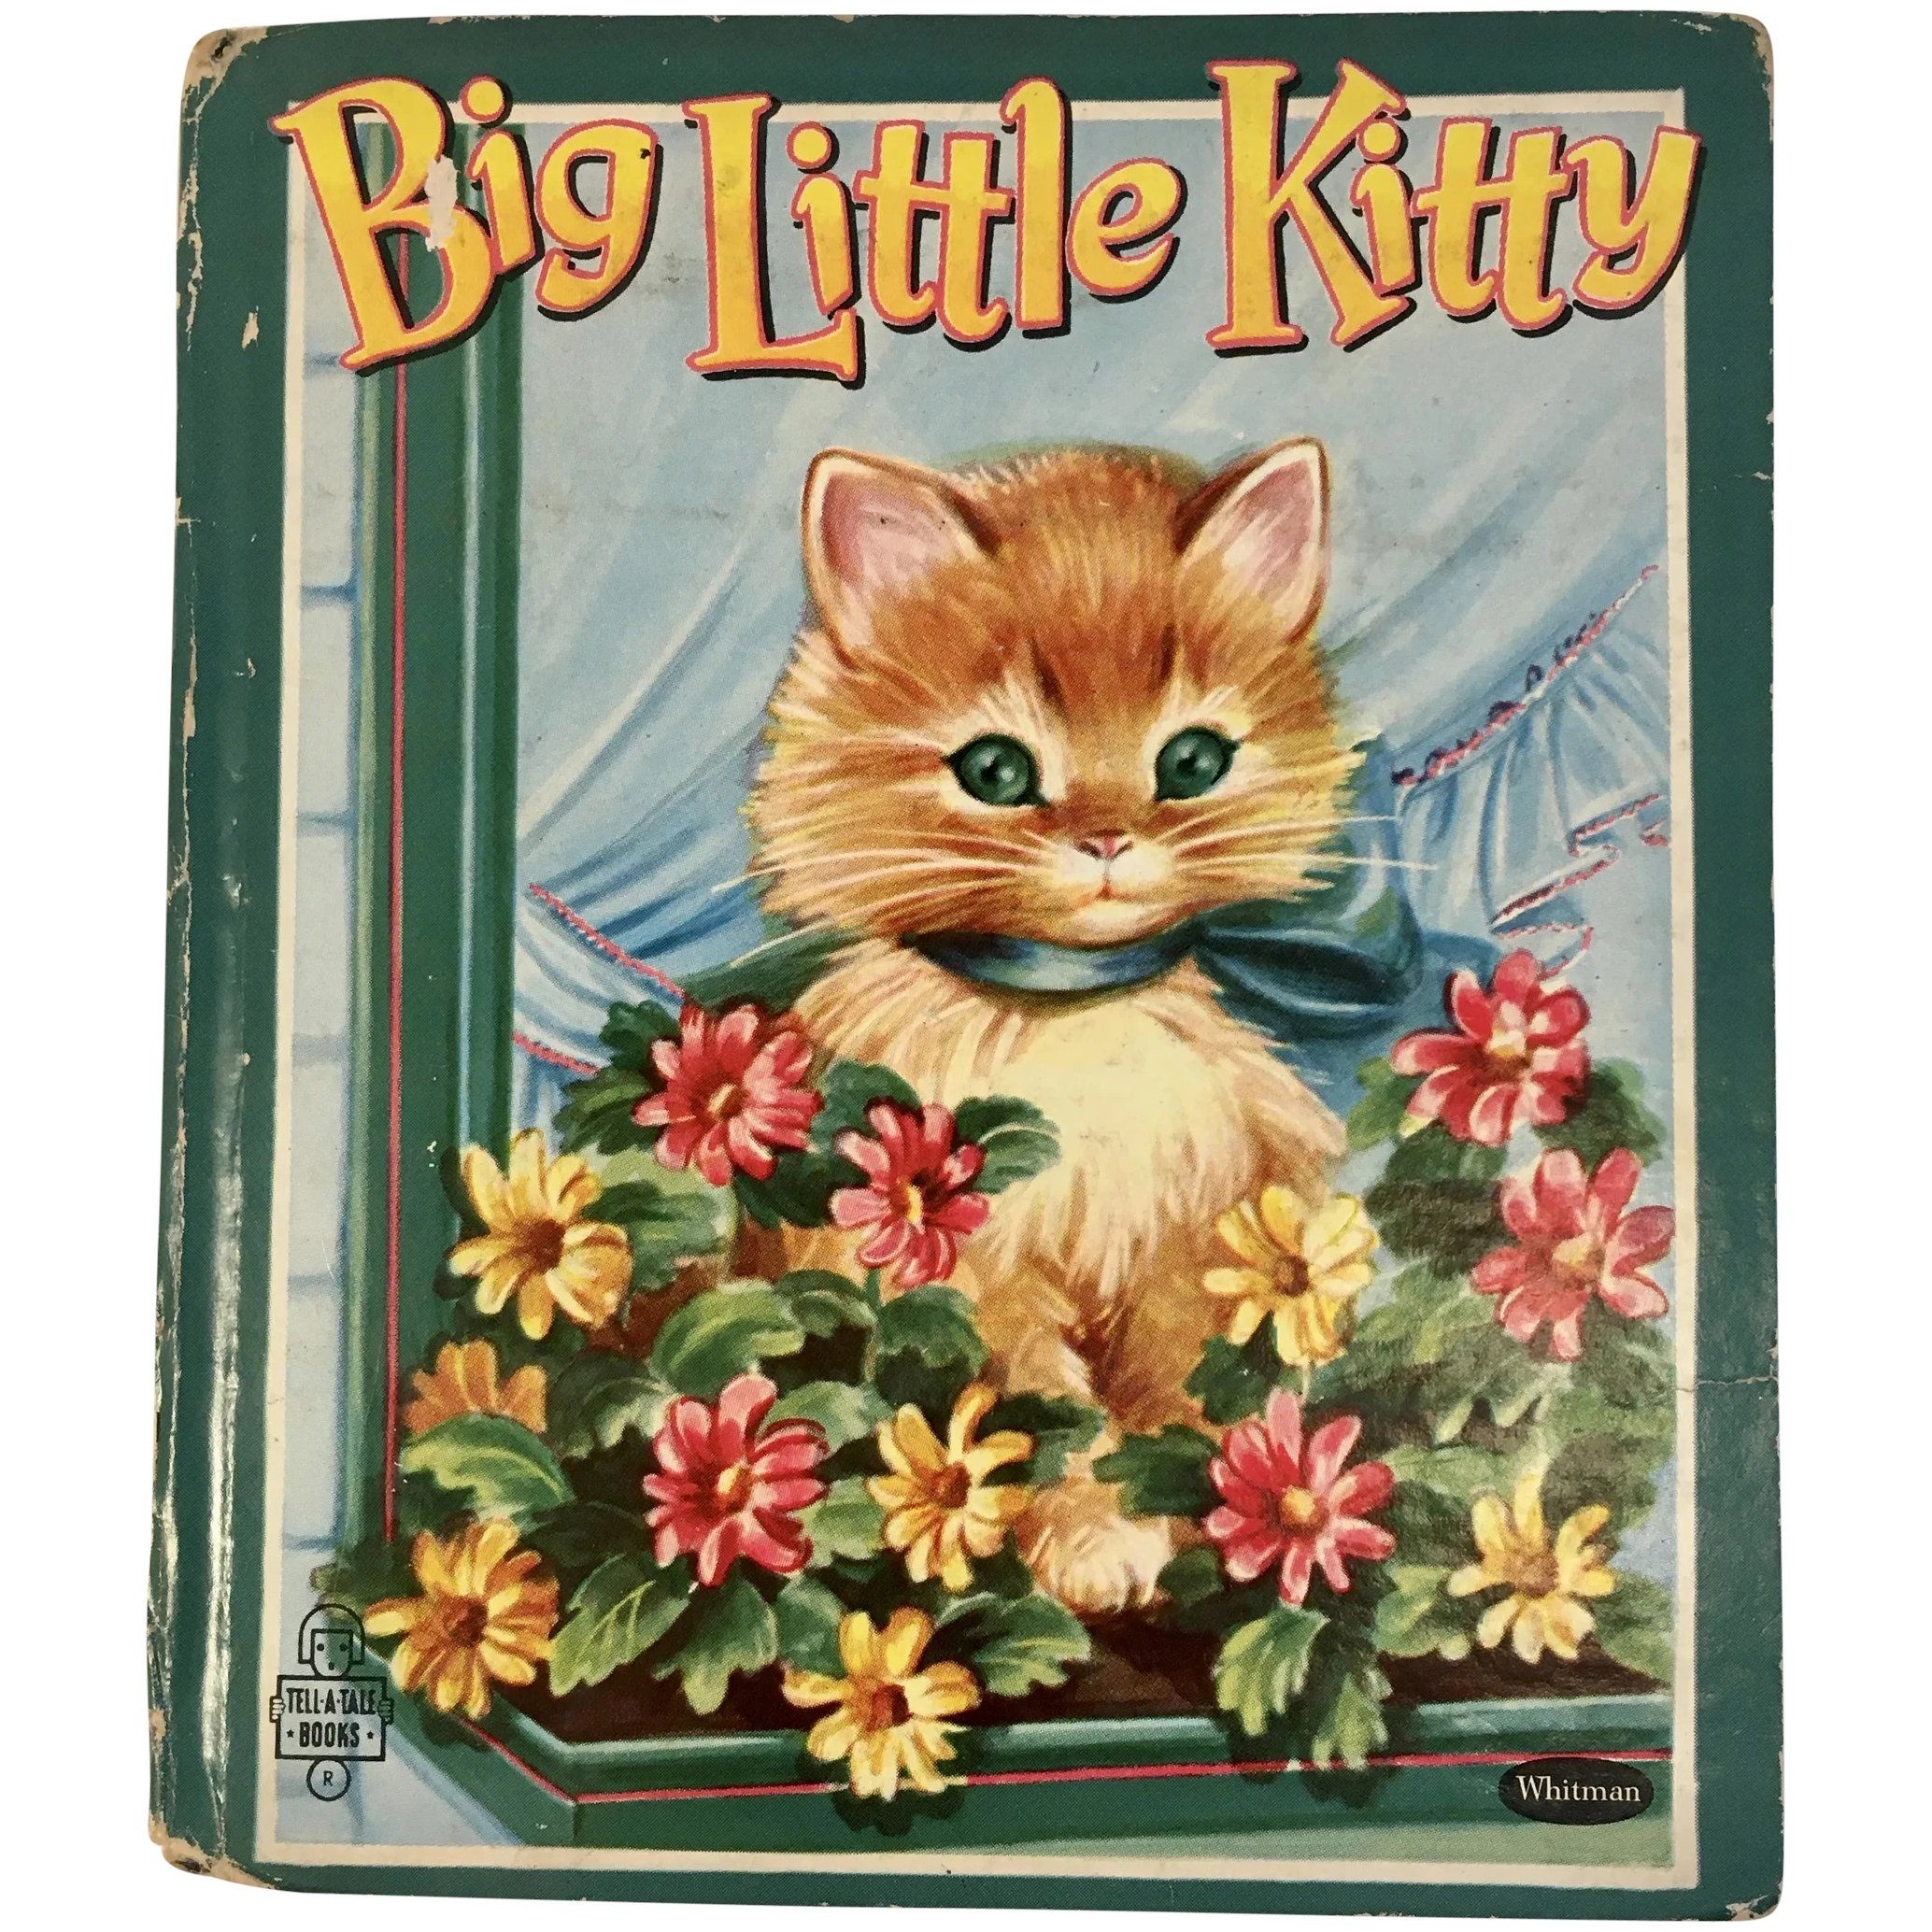 1953 Big Little Kitty Whitman Tell A Tale Childrens Book By Jan D Biggers Cats Kittens Kitties In 2020 With Images Little Kitty Childrens Books Illustrations Old Children S Books